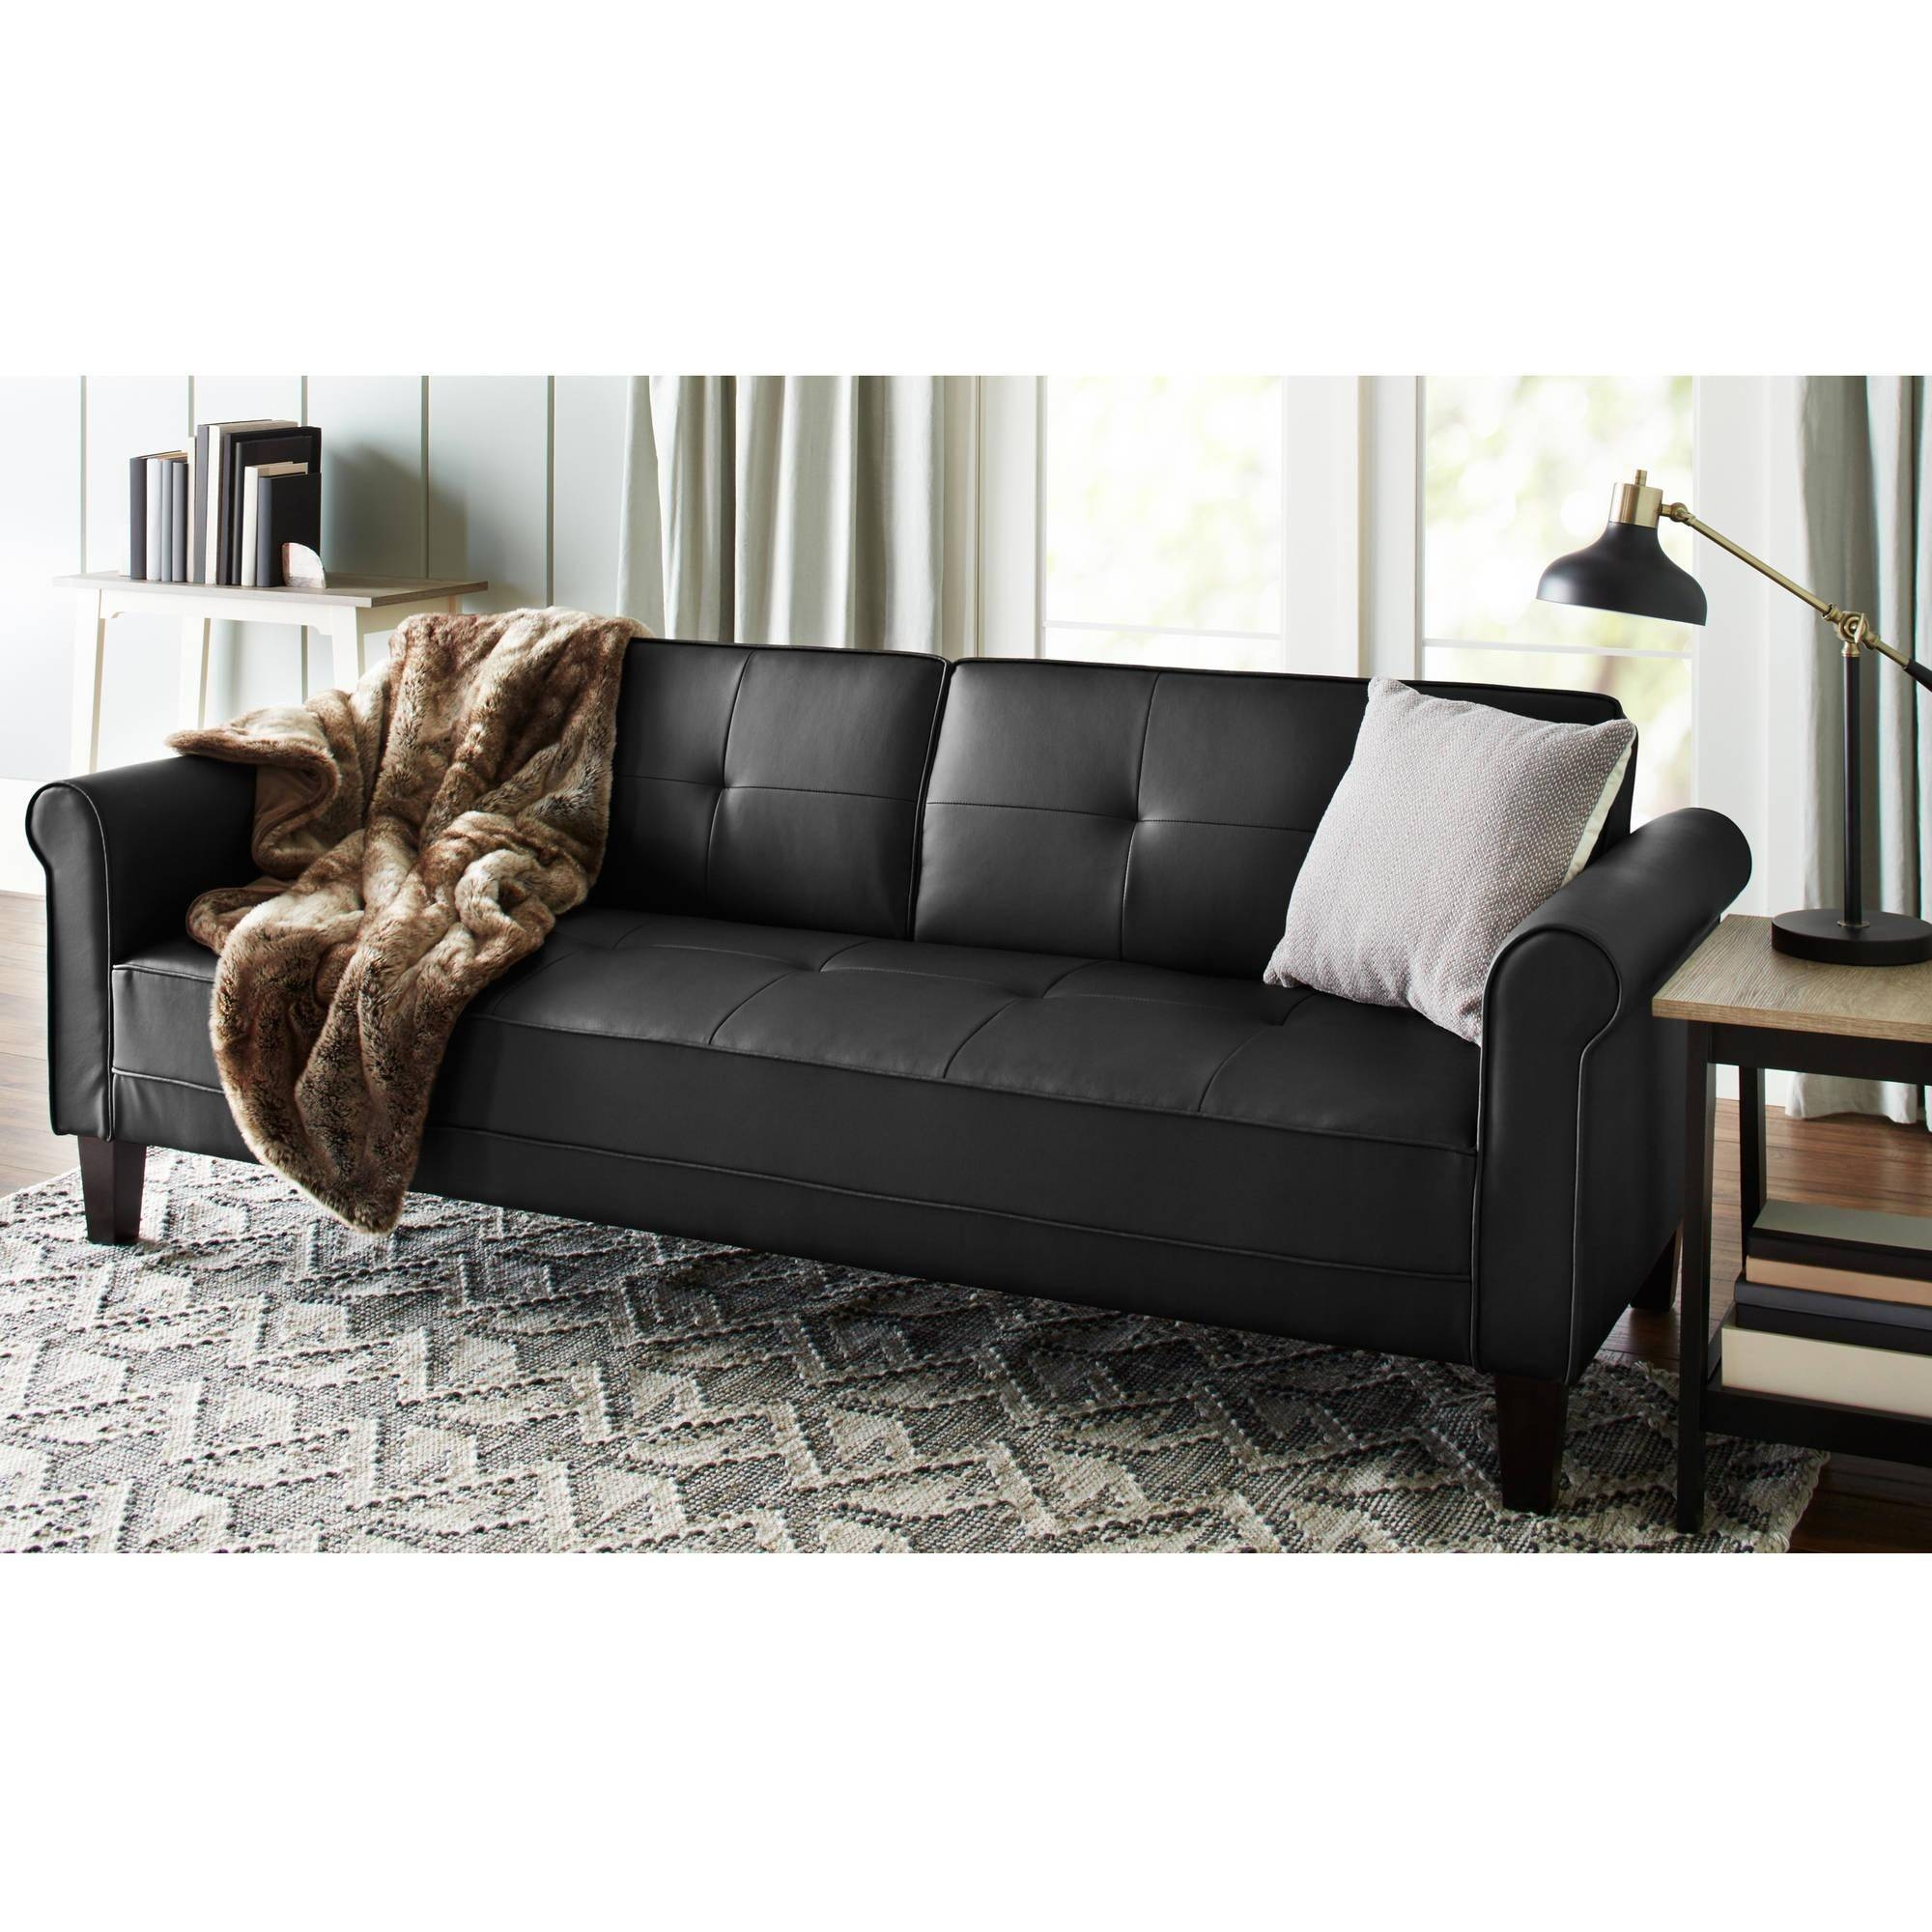 20 Best Ashton Sofas | Sofa Ideas inside Ashton Sofas (Image 2 of 15)